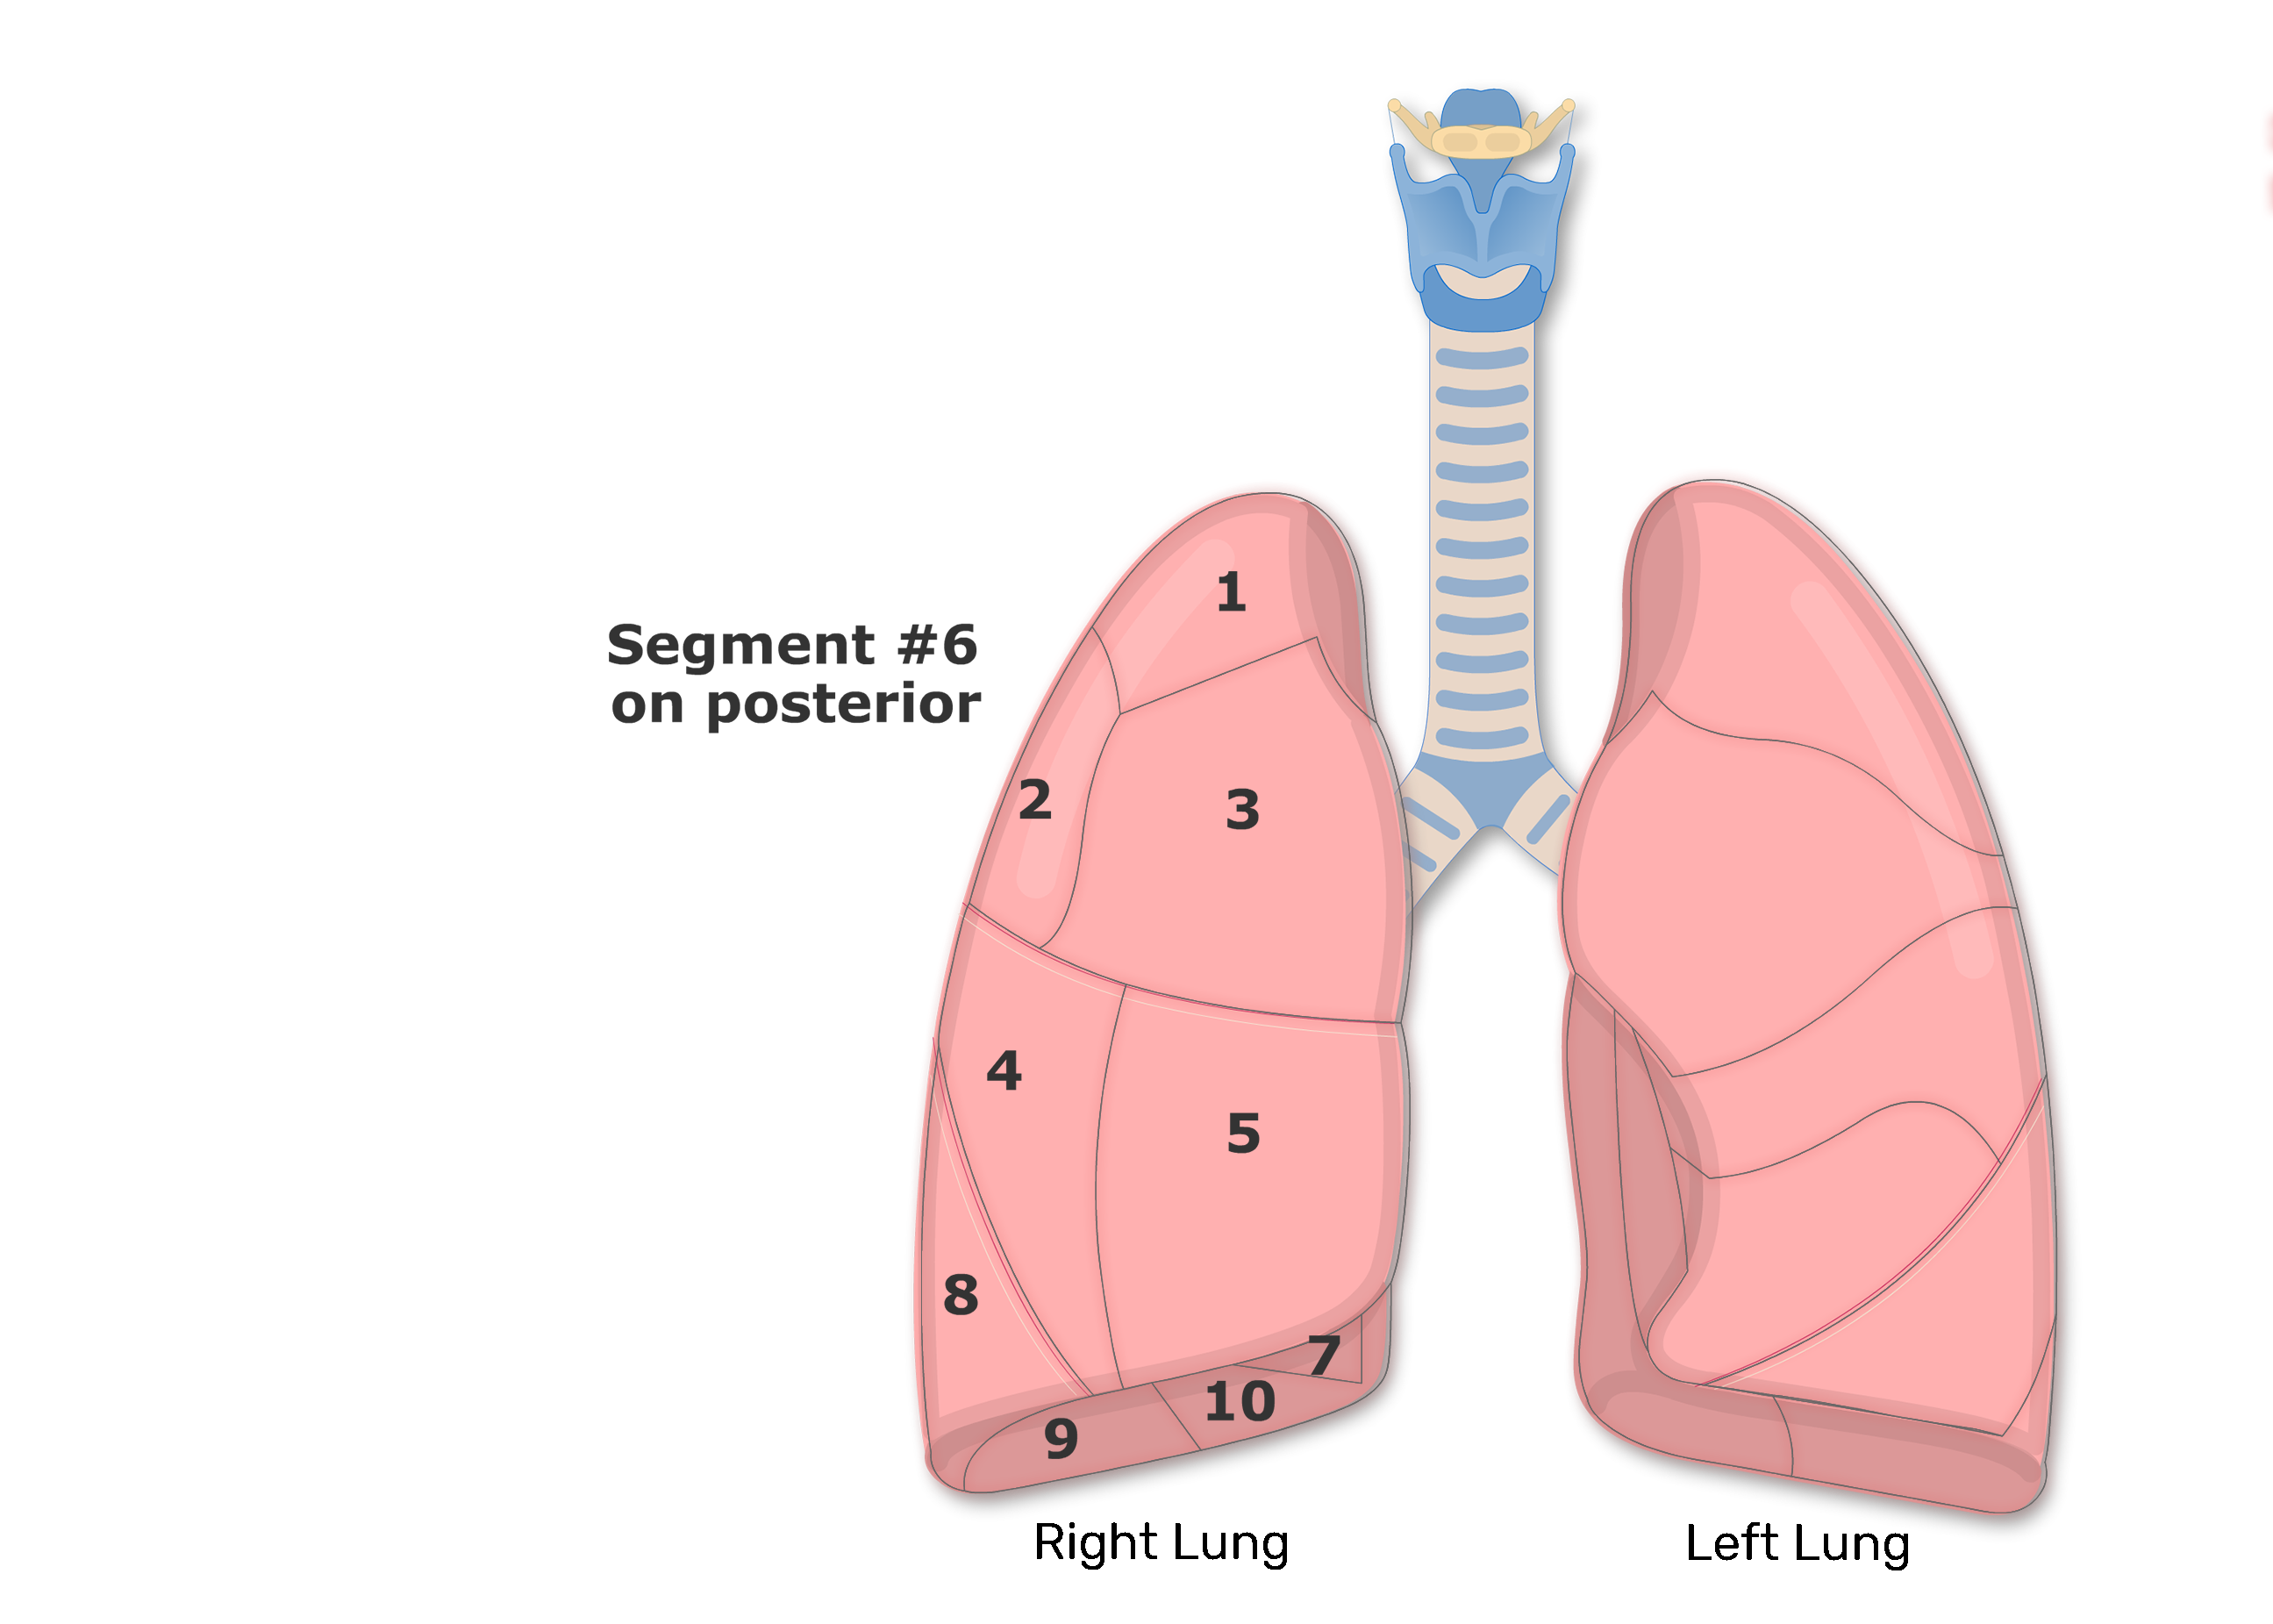 10 Segments shown on the Right Lungs